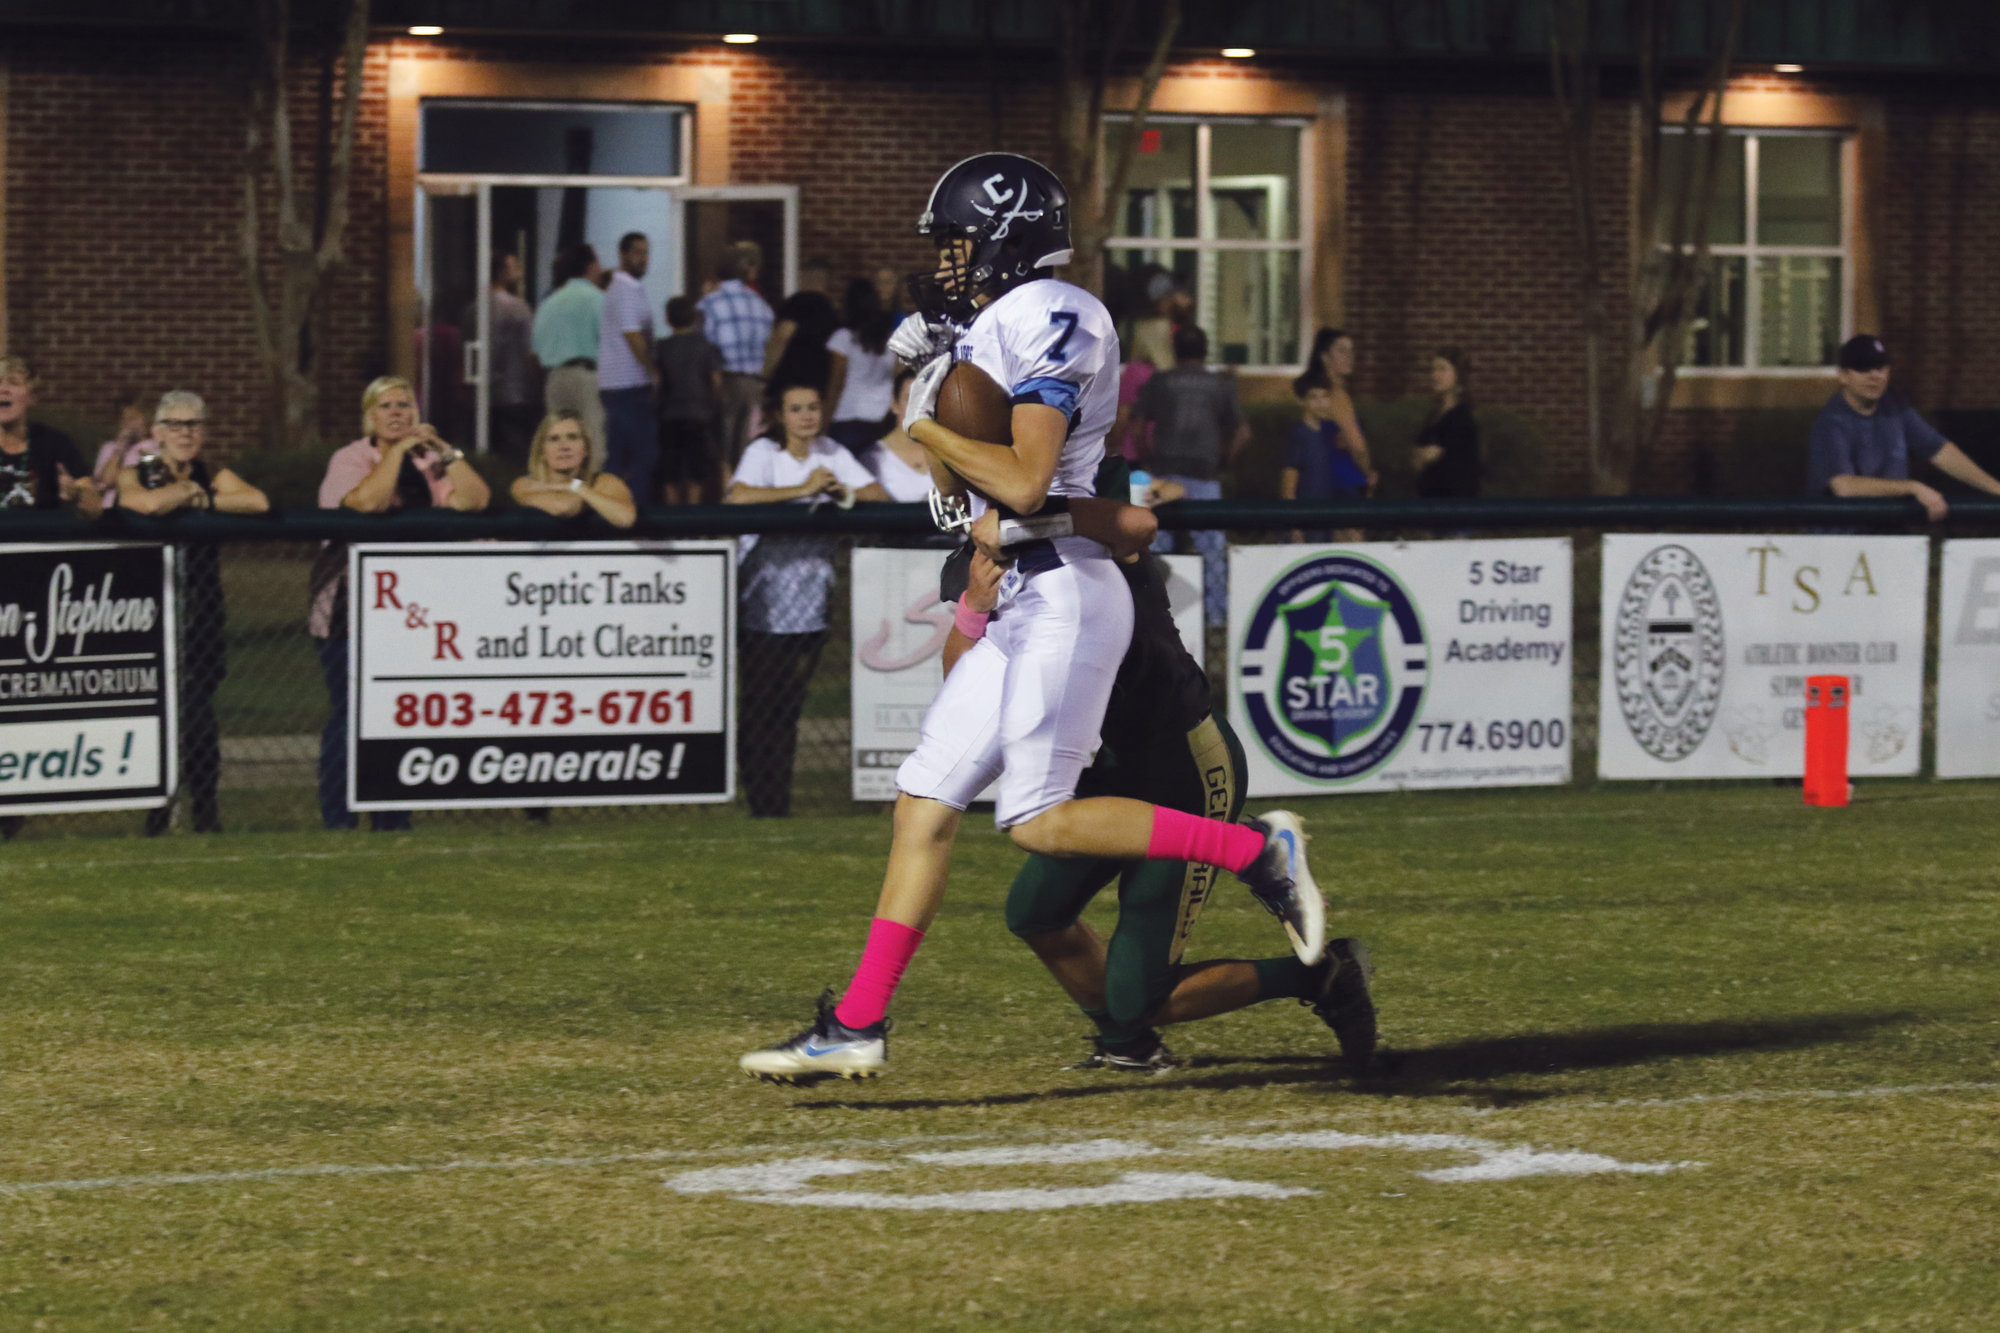 Morgan Brown scores on a 4-yard touchdown run to give Robert E. Lee a 33-0 lead early in the third quarter of the Cavaliers' 40-16 victory over Thomas Sumter Academy on Friday night at General Field.